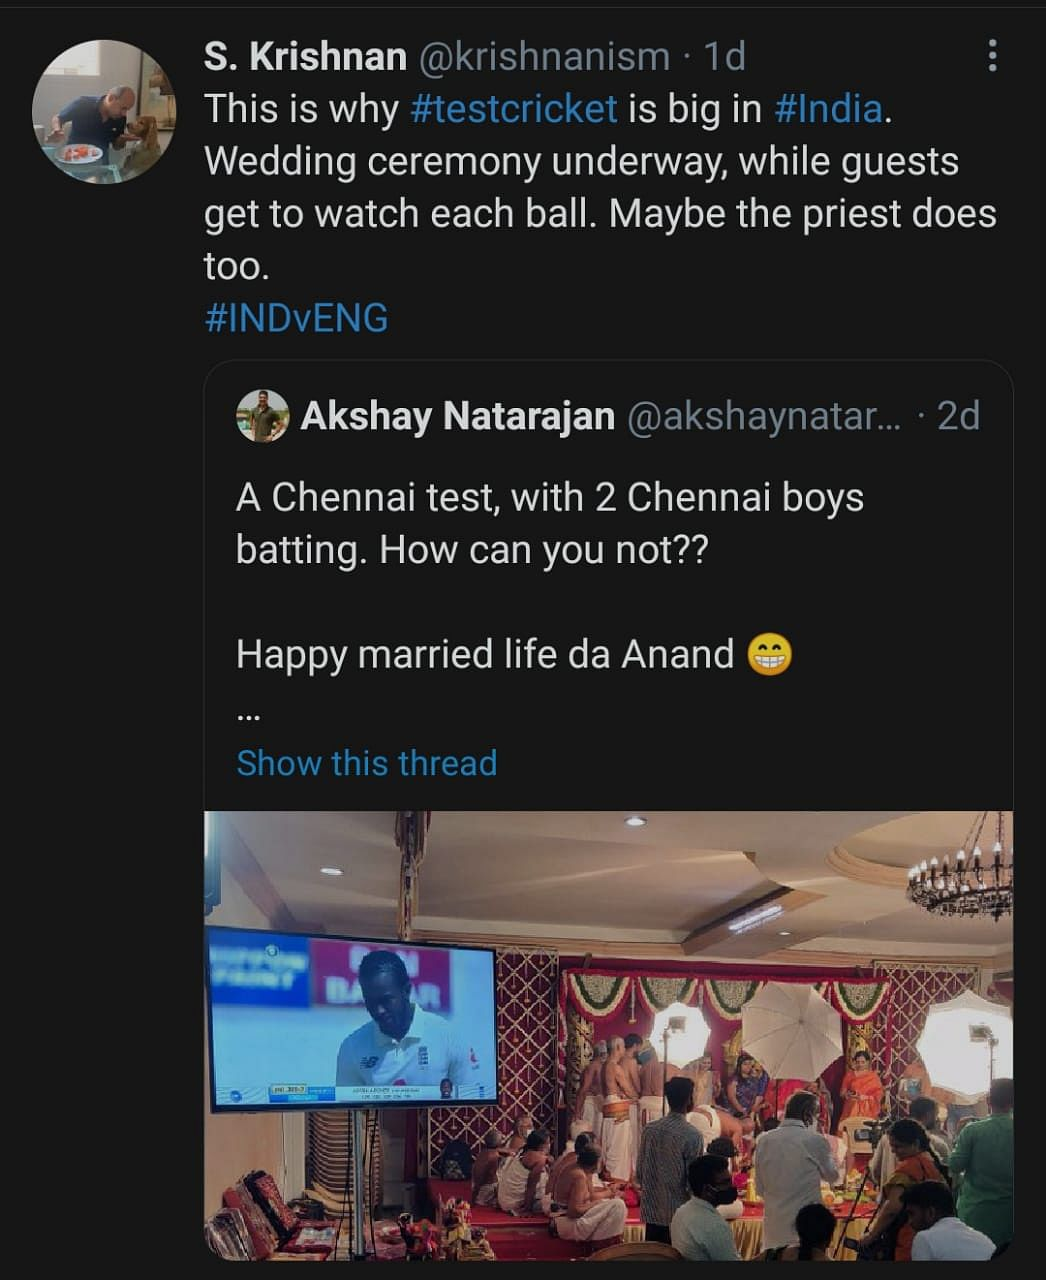 Live Screening of Cricket Match at an Indian Wedding Goes Viral